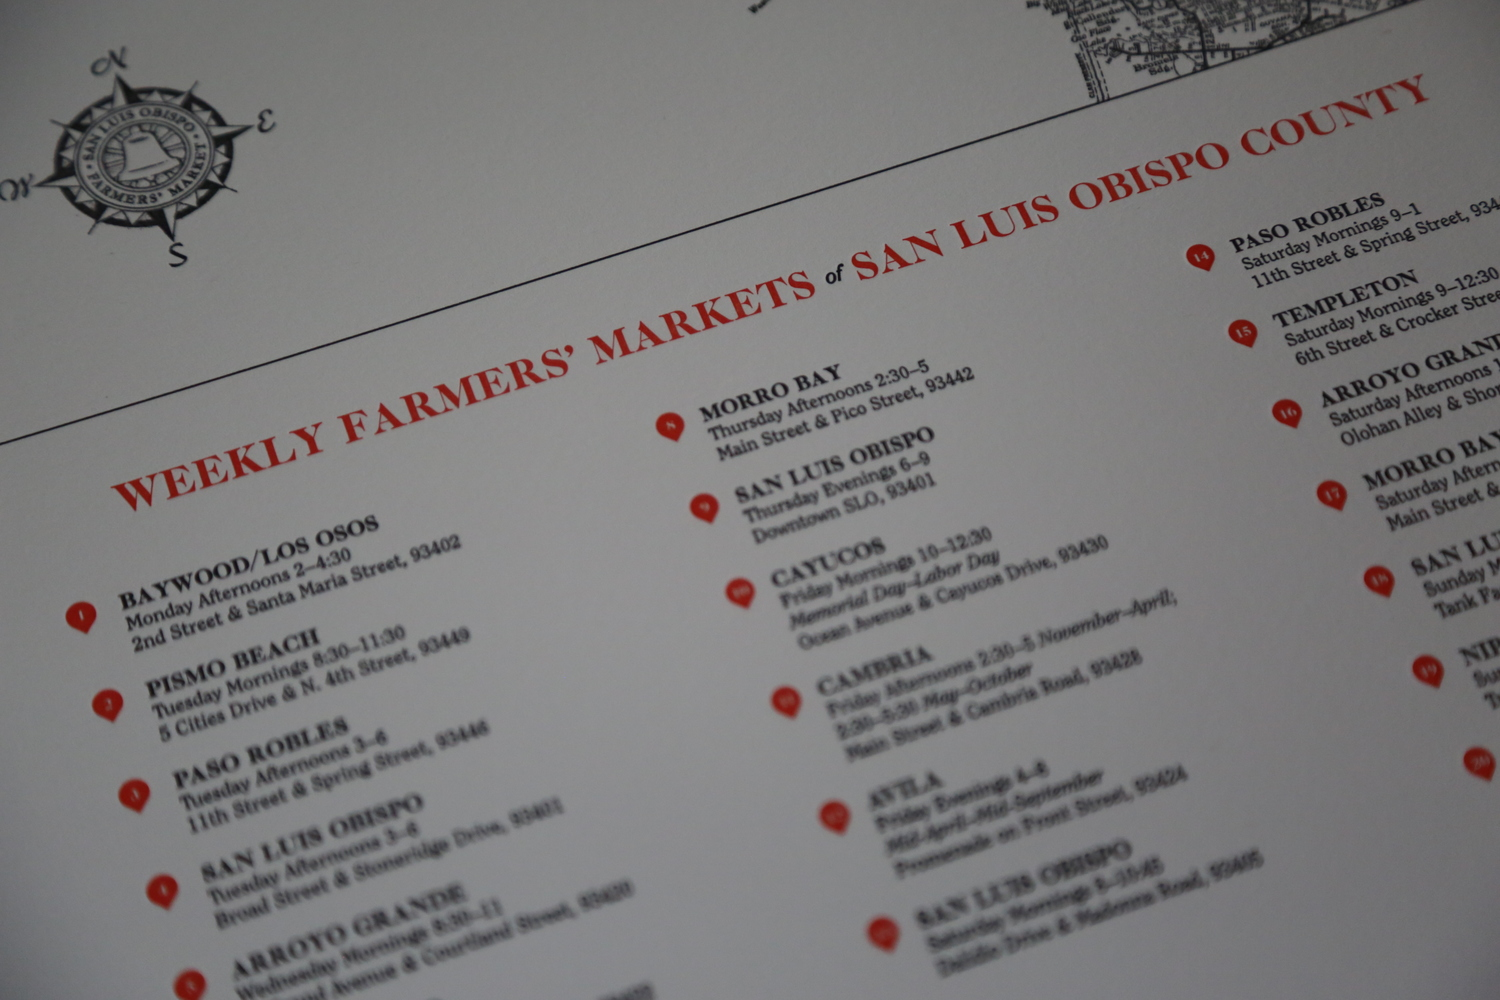 slo-farmers-market-cookbook-map.jpg